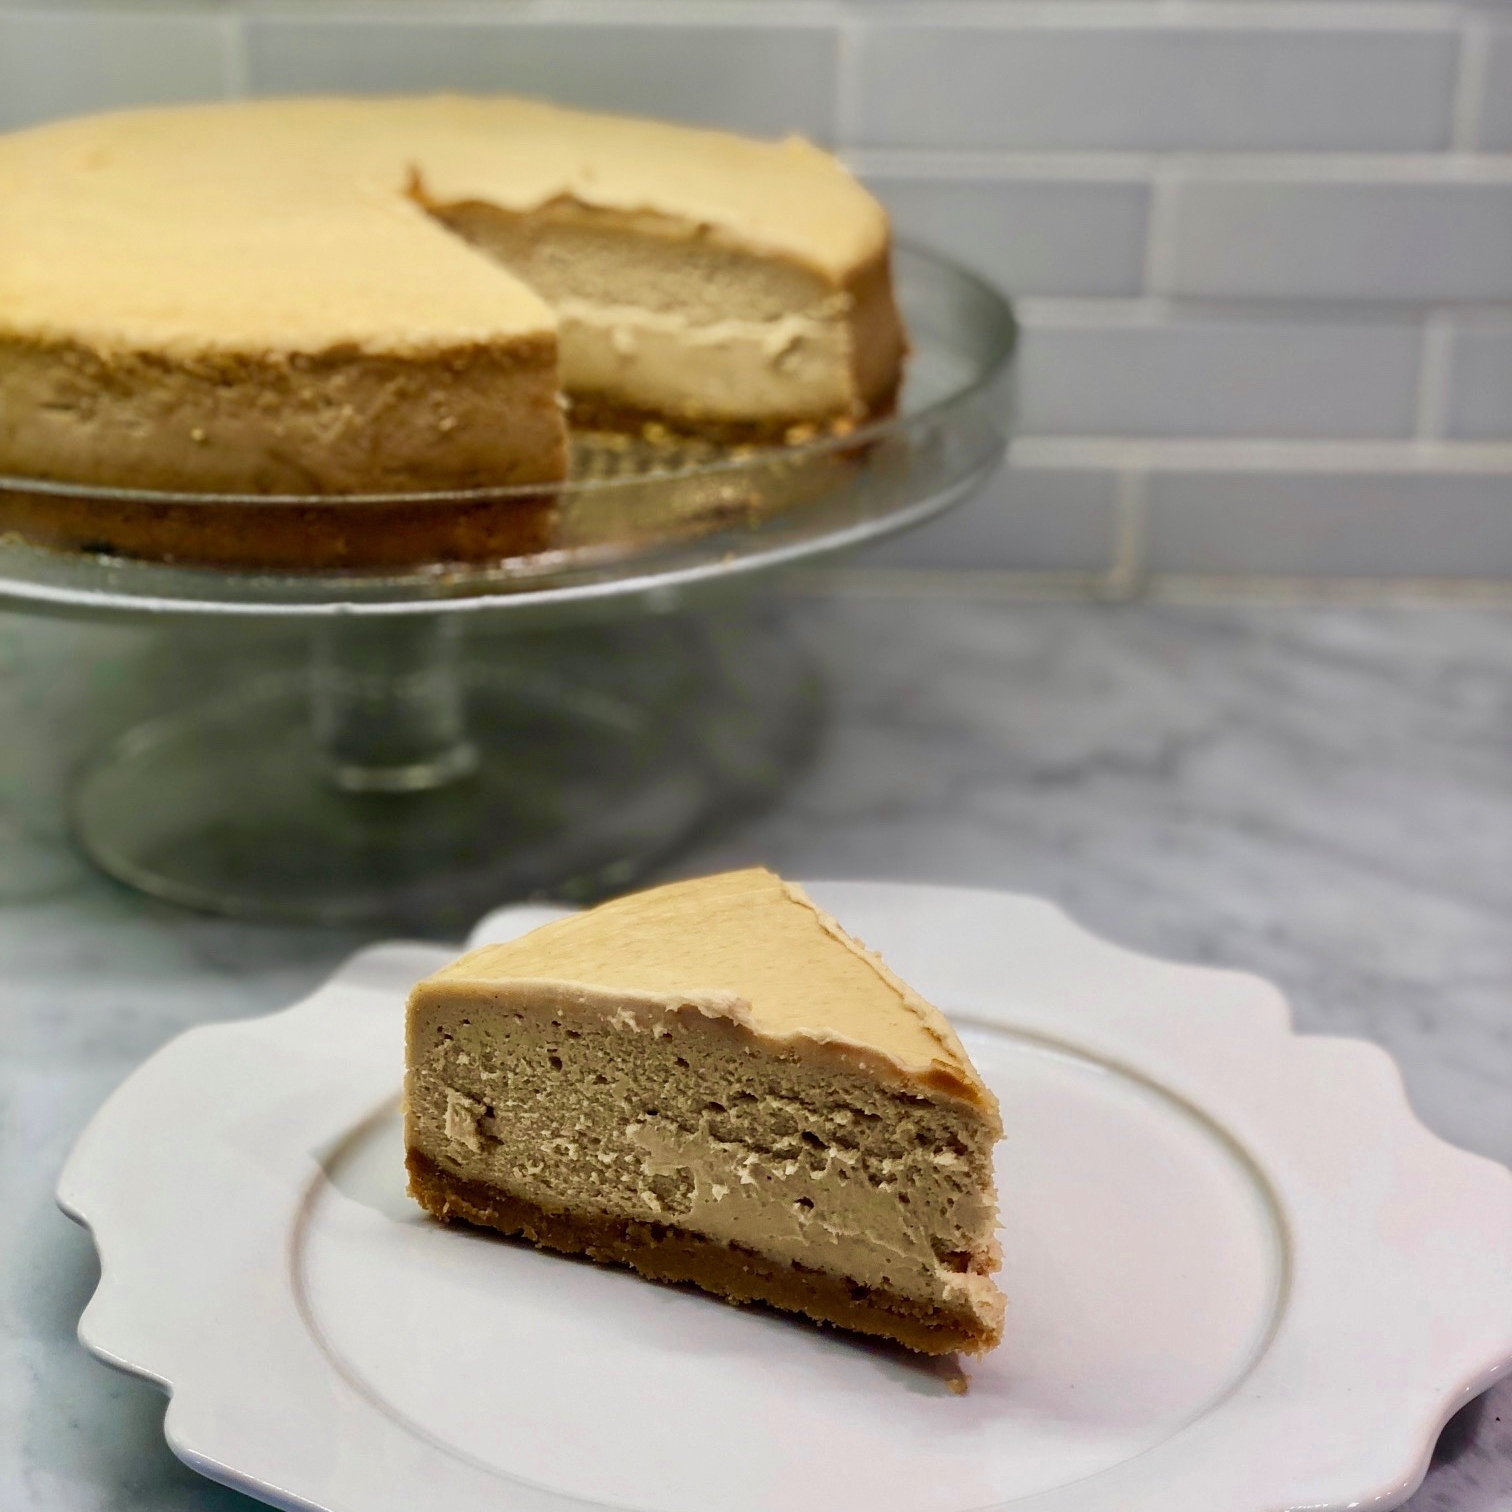 Cookie Life Recipe of the Day |Peanut Patriot Cheesecake - Smooth and creamy peanut butter cheesecake with a Peanut Patriot cookie crust.